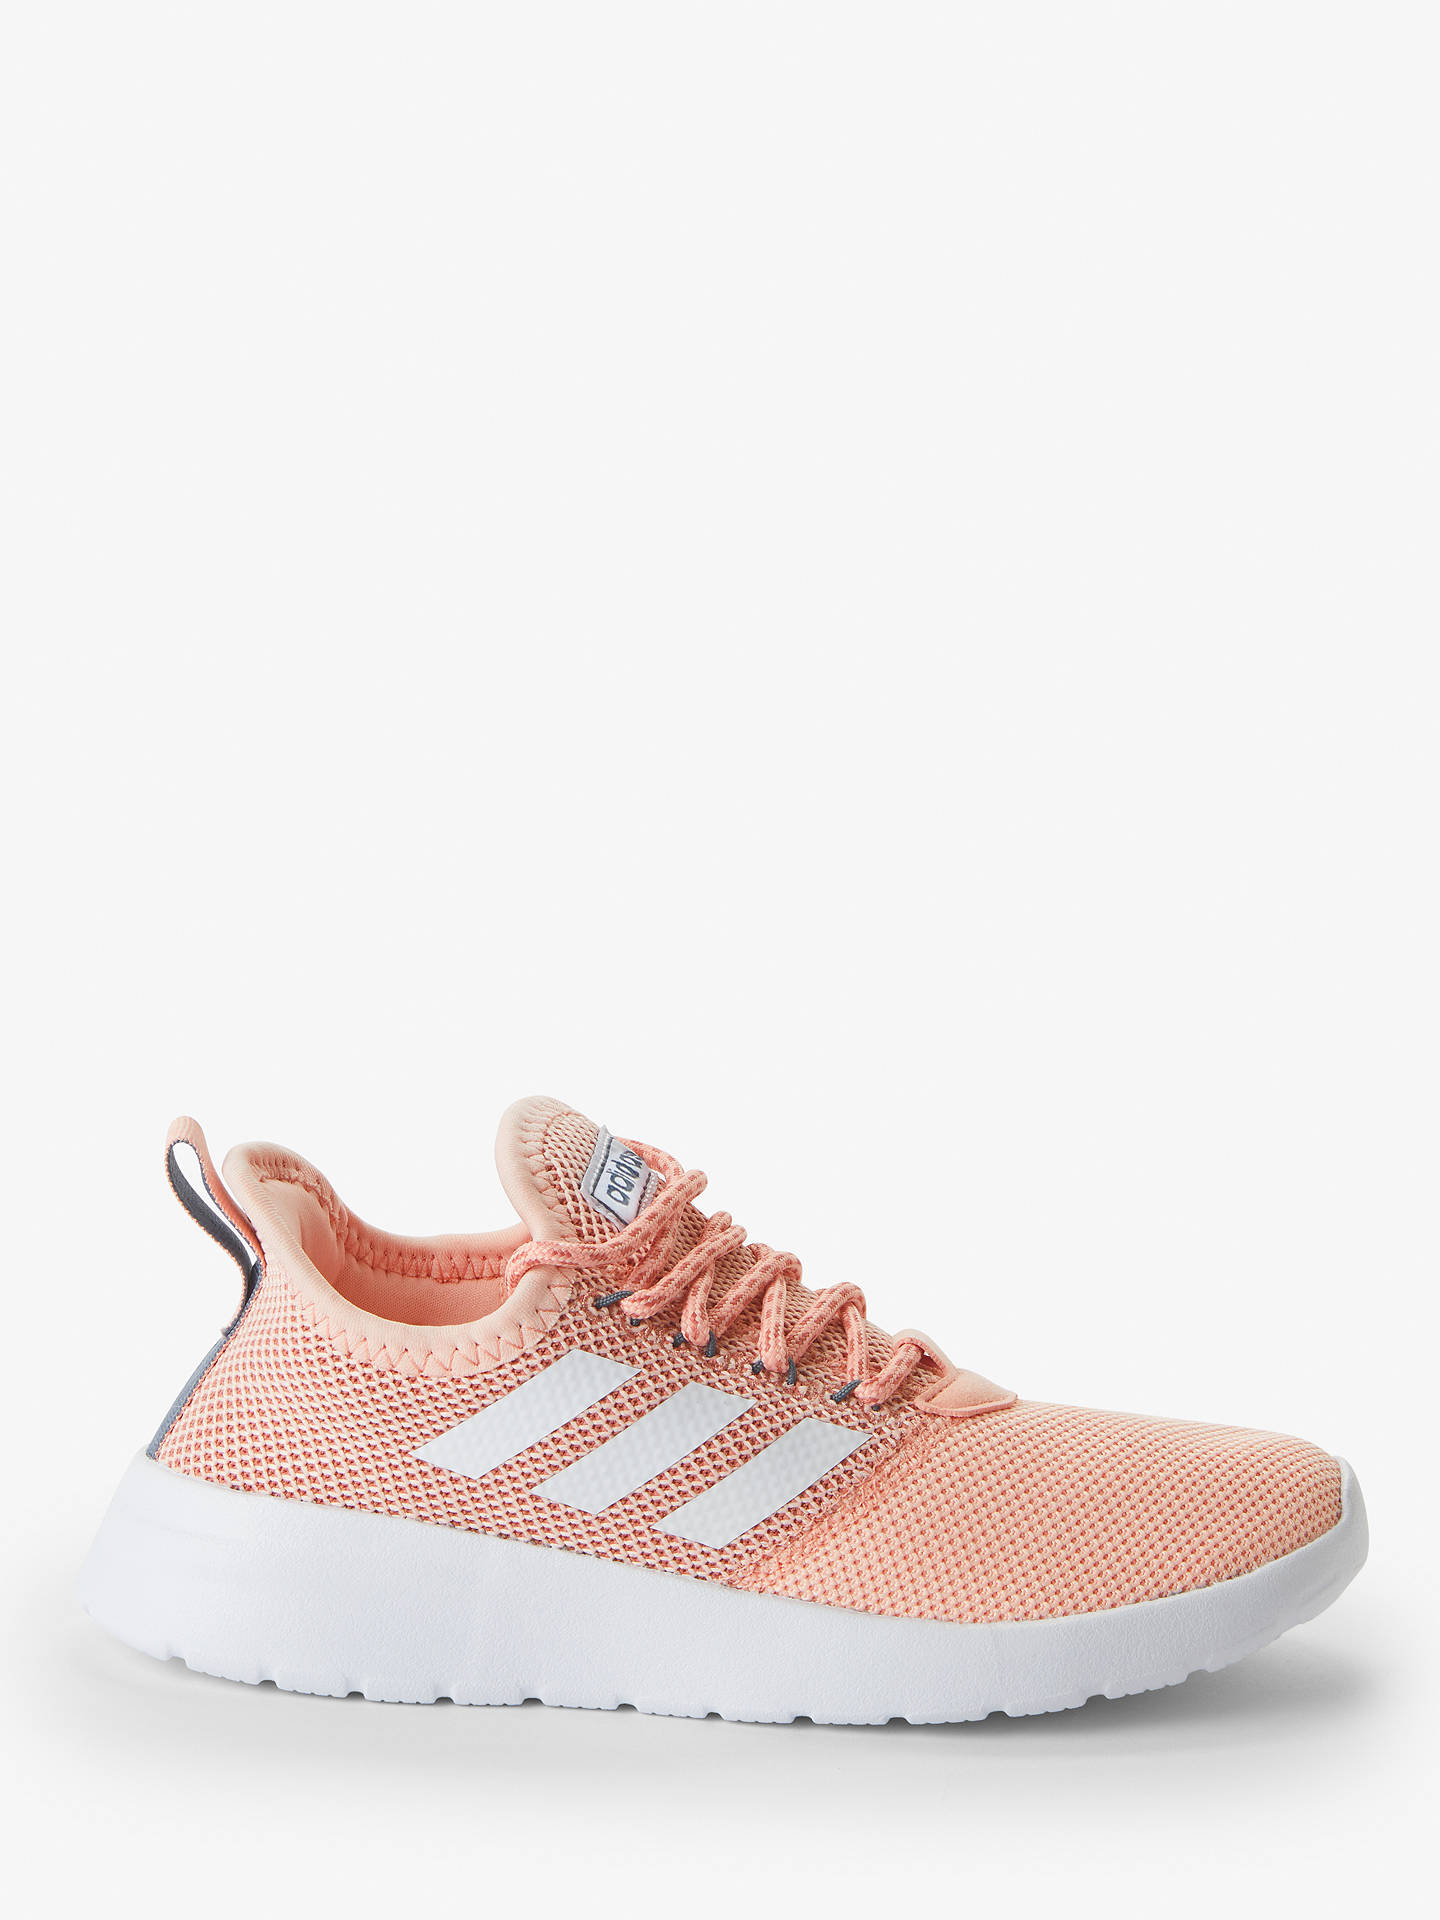 5bed290e47 adidas Lite Racer RBN Women's Running Shoes, Glow Pink/Cloud White/Onix